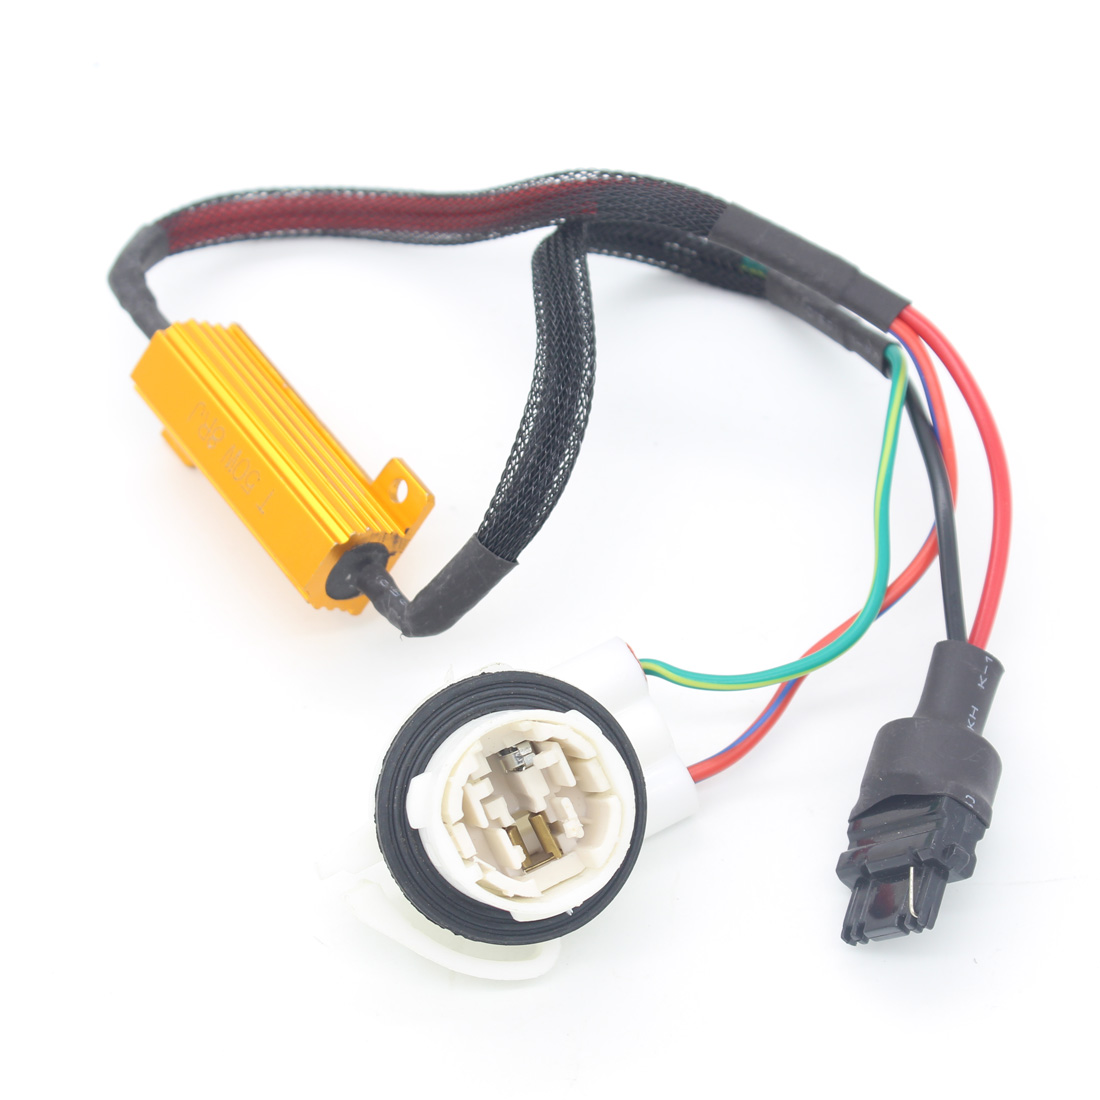 Car Led Fog Light Lamp Load Resistor Canbus Error Free Wiring 12v H11 Hid Warning Canceller Install The Same Effect By Reference Product Package Does Not Include Bulb